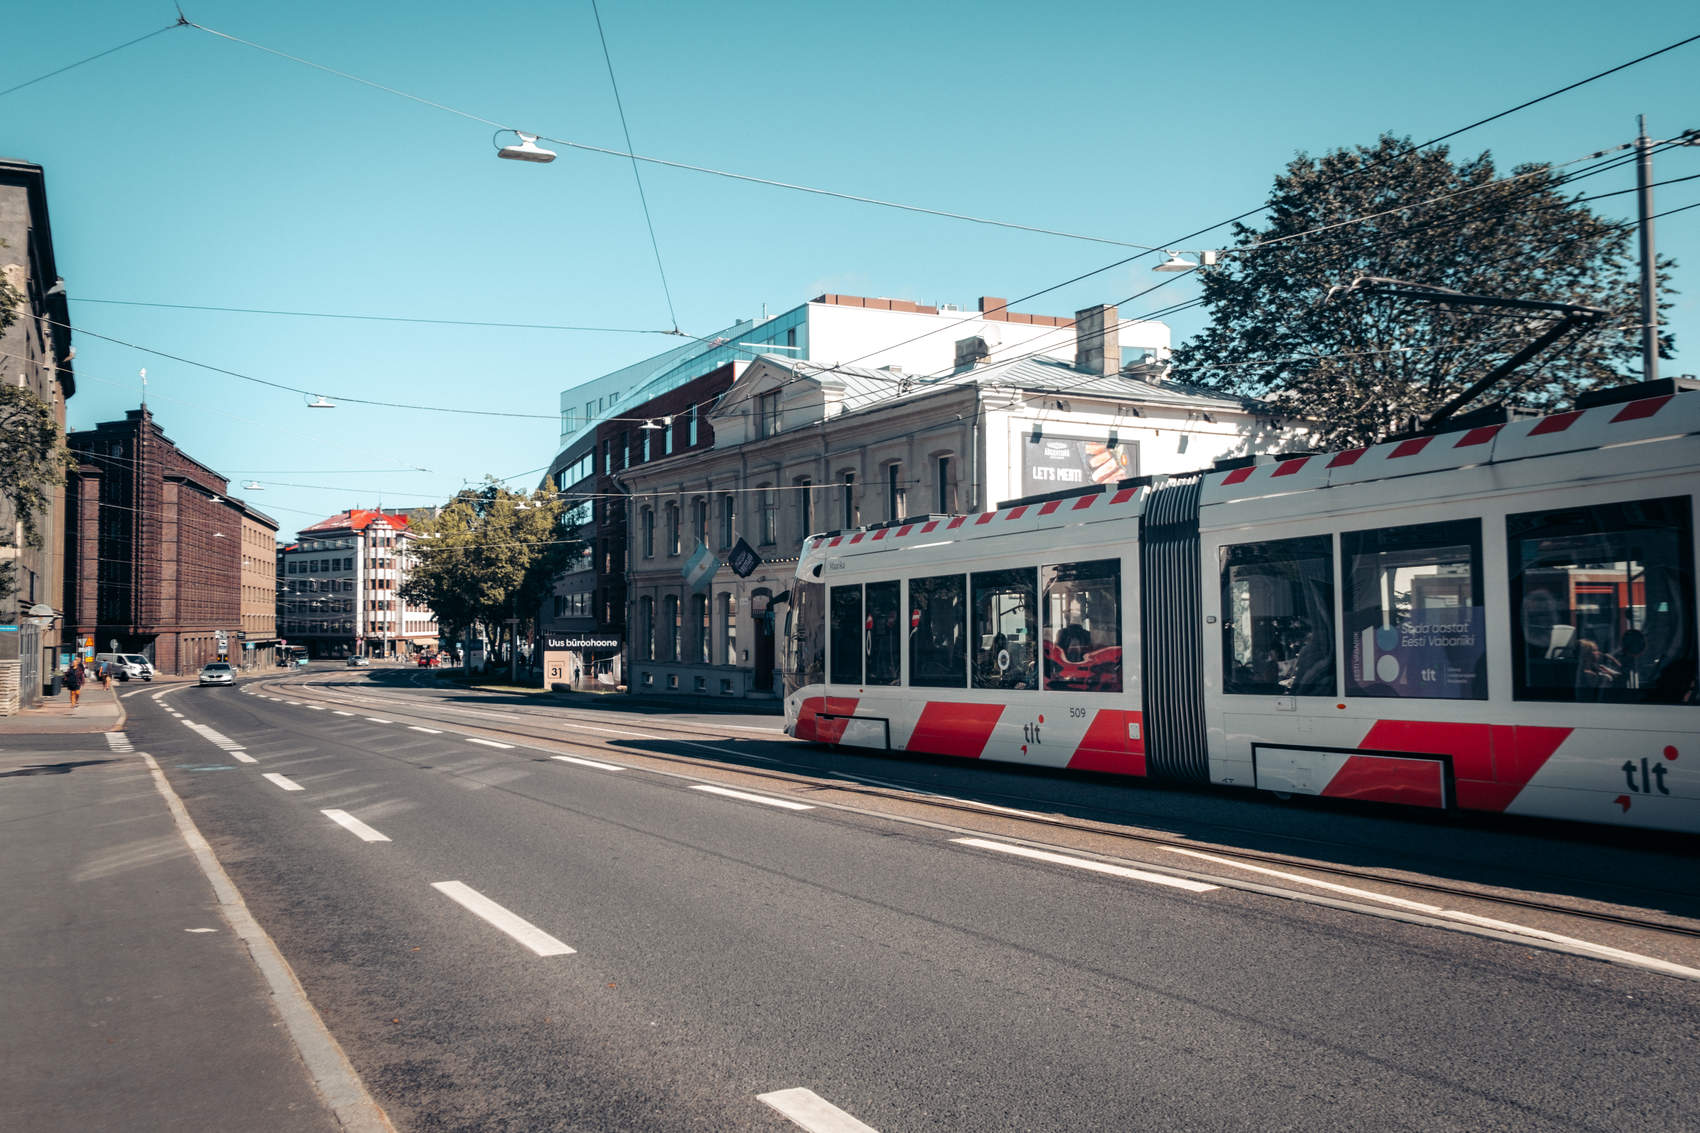 Tenet filming locations in Tallinn, Estonia: Pärnu maantee and the red-and-white tram in the city centre. Photo: Kadi-Liis Koppel